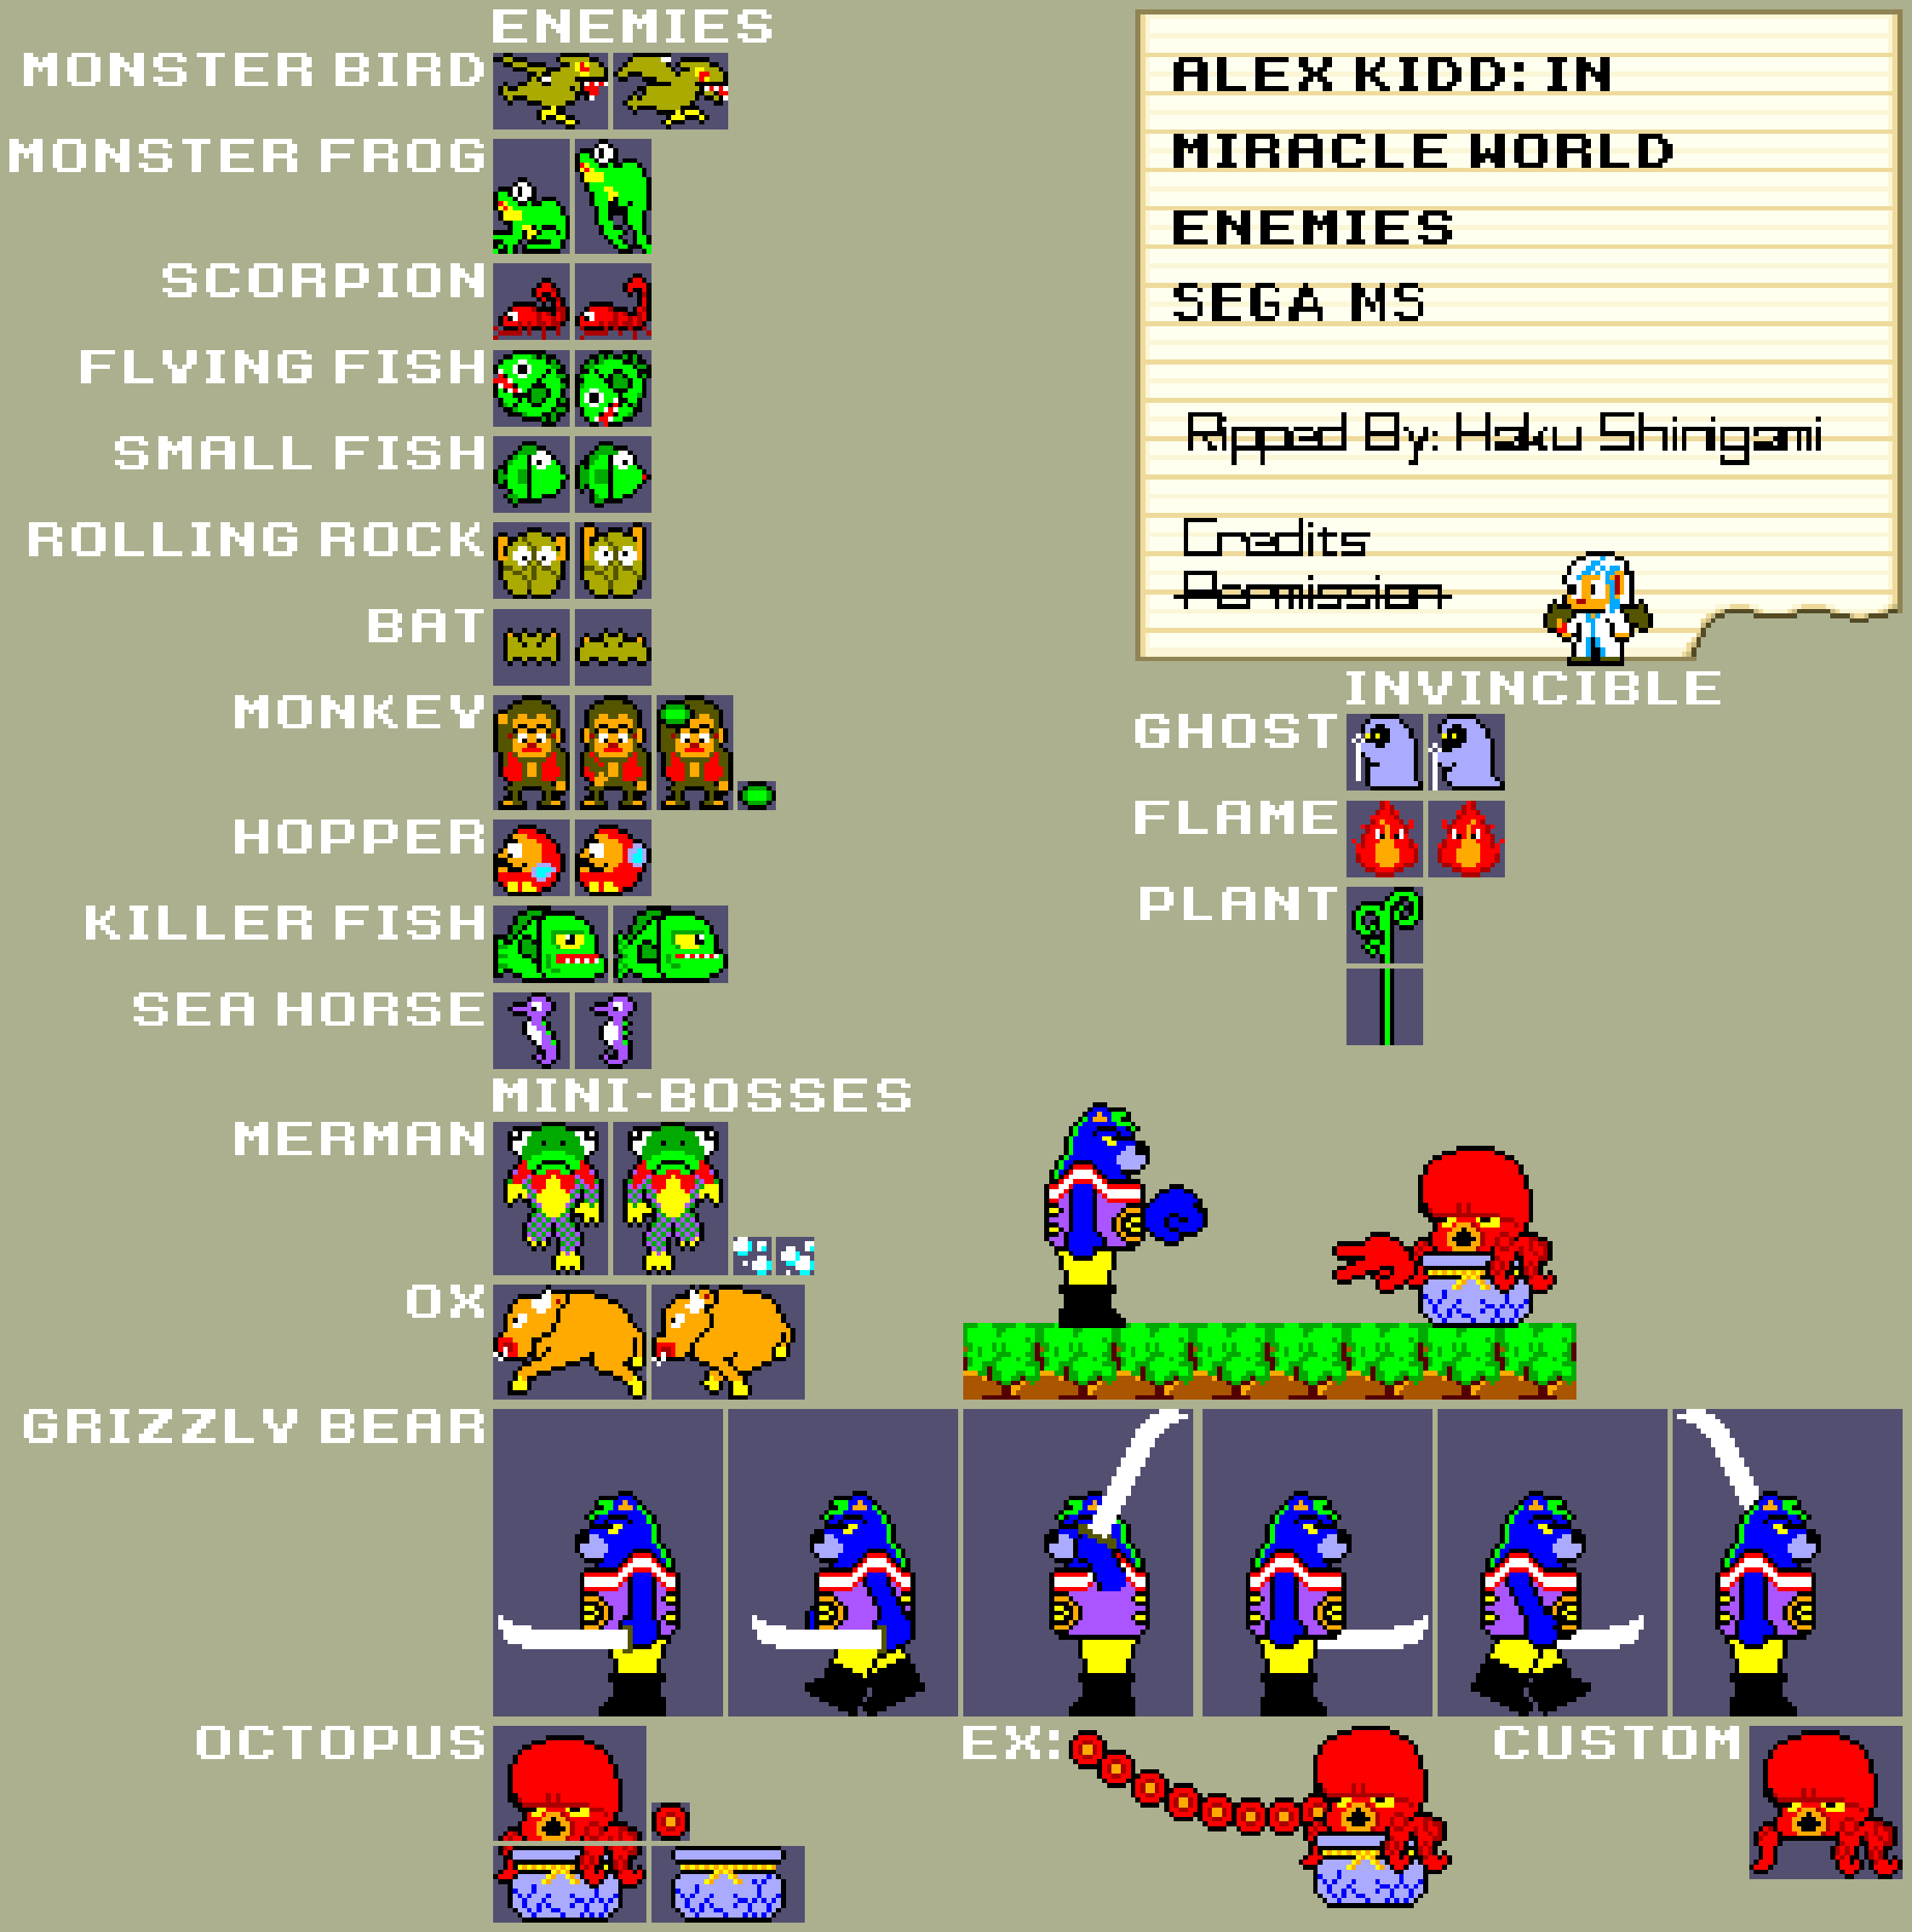 Master System - Alex Kidd in Miracle World - Enemies.png